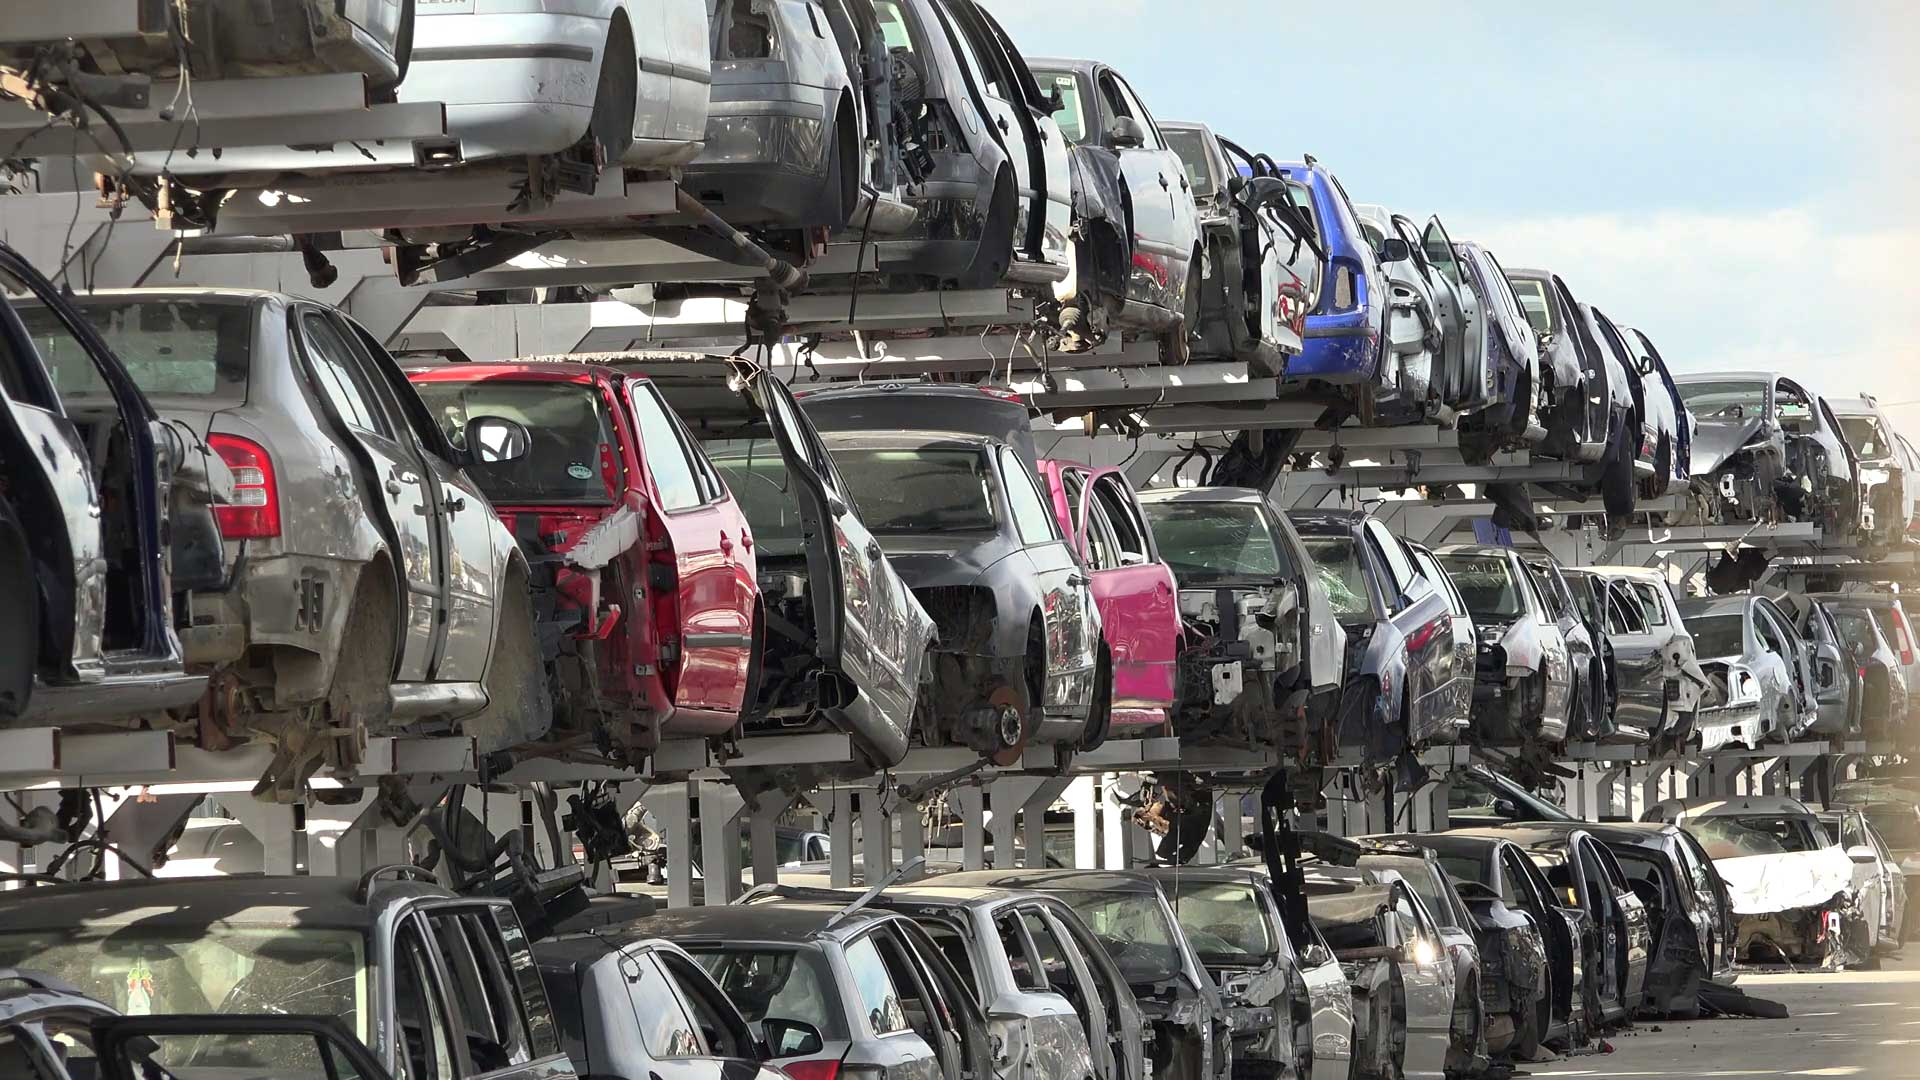 Location Can Affect The Value Of Your Junk Car